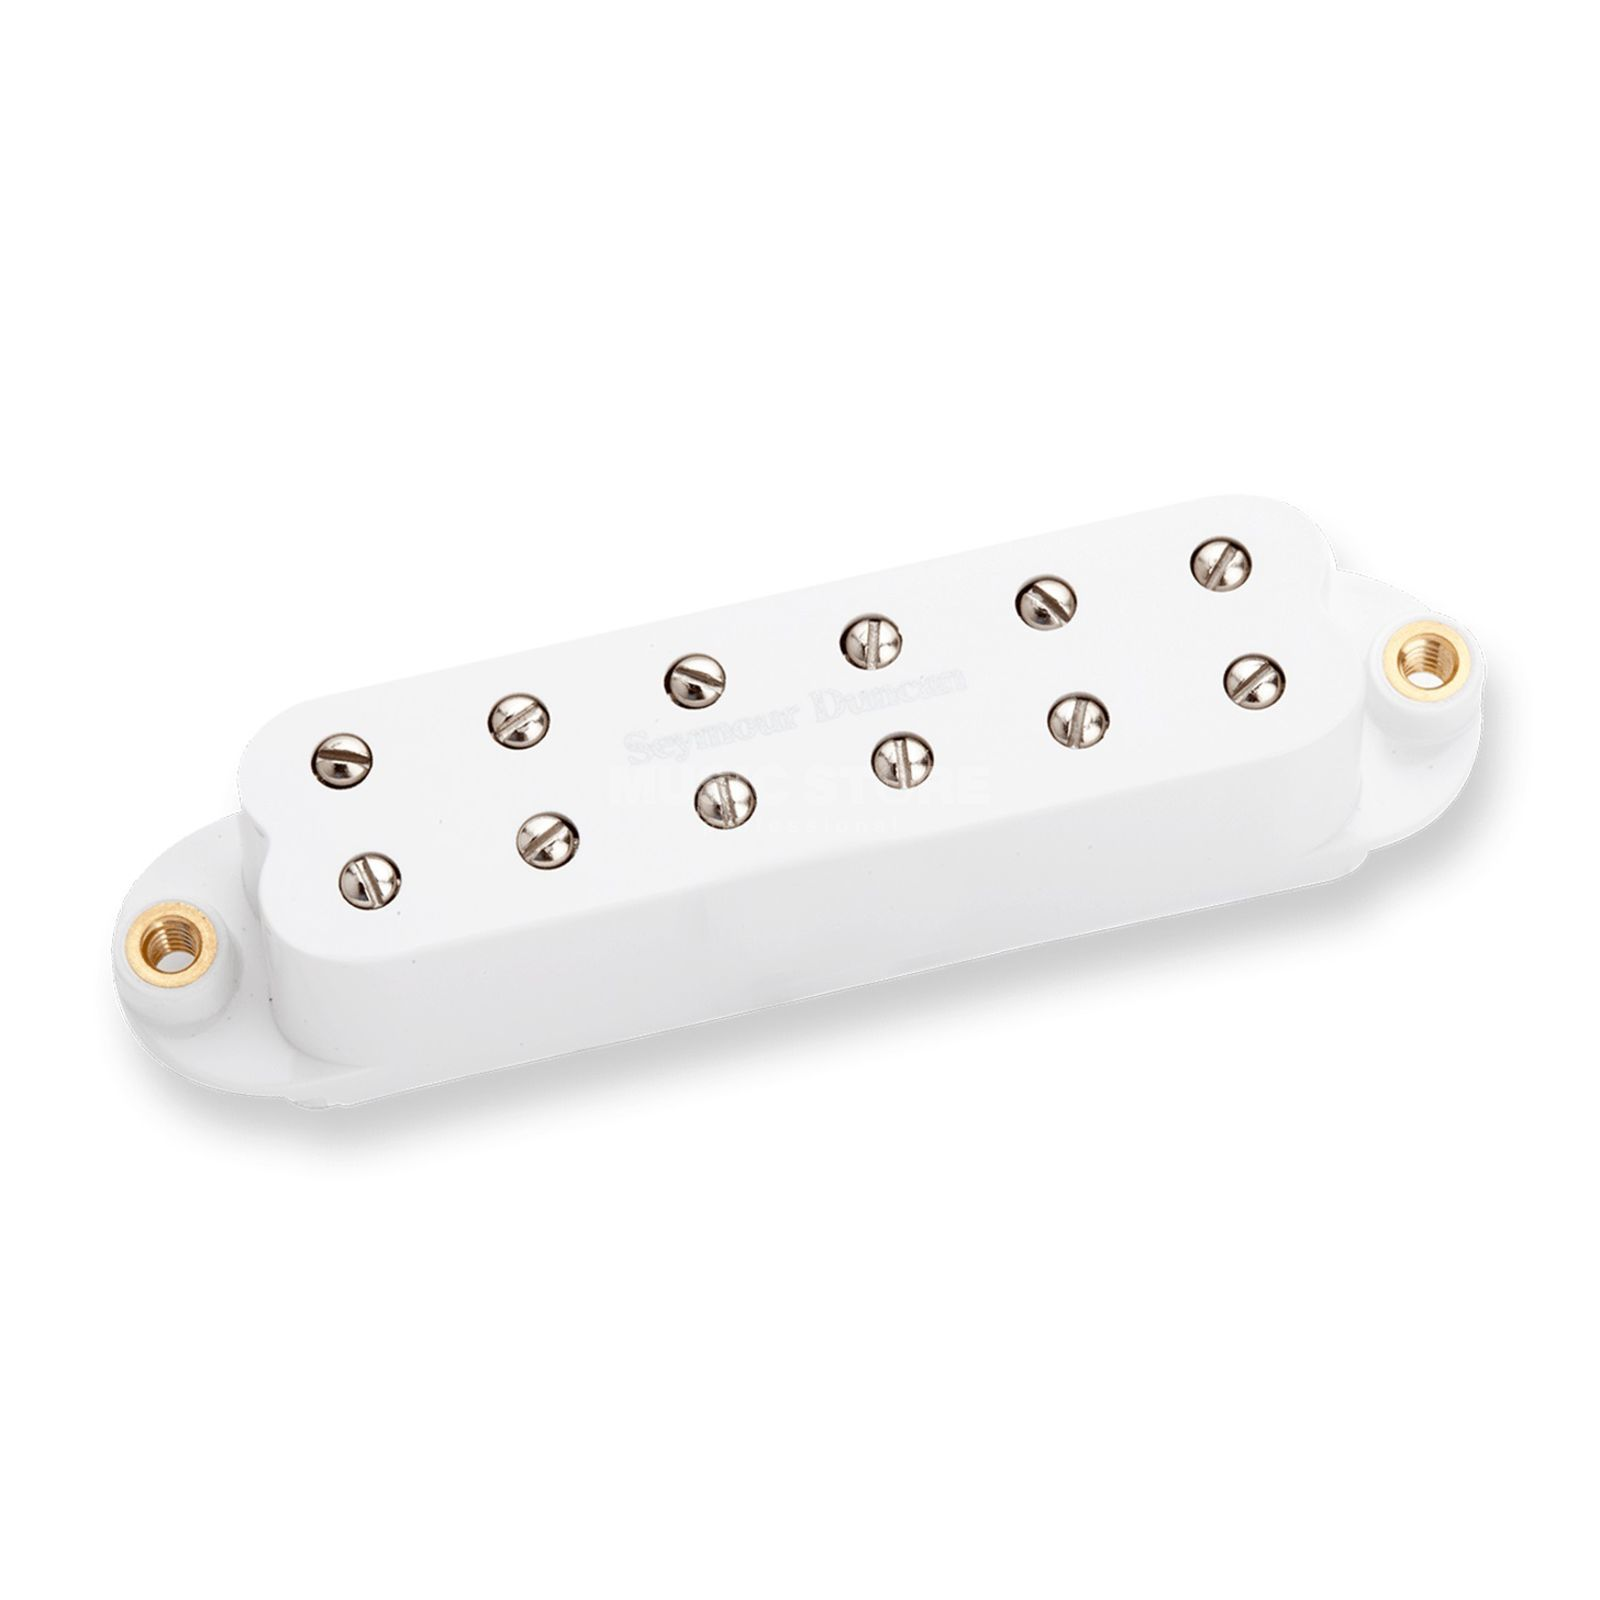 Seymour Duncan SL59-1B WHT Little '59 White Bridge Produktbild